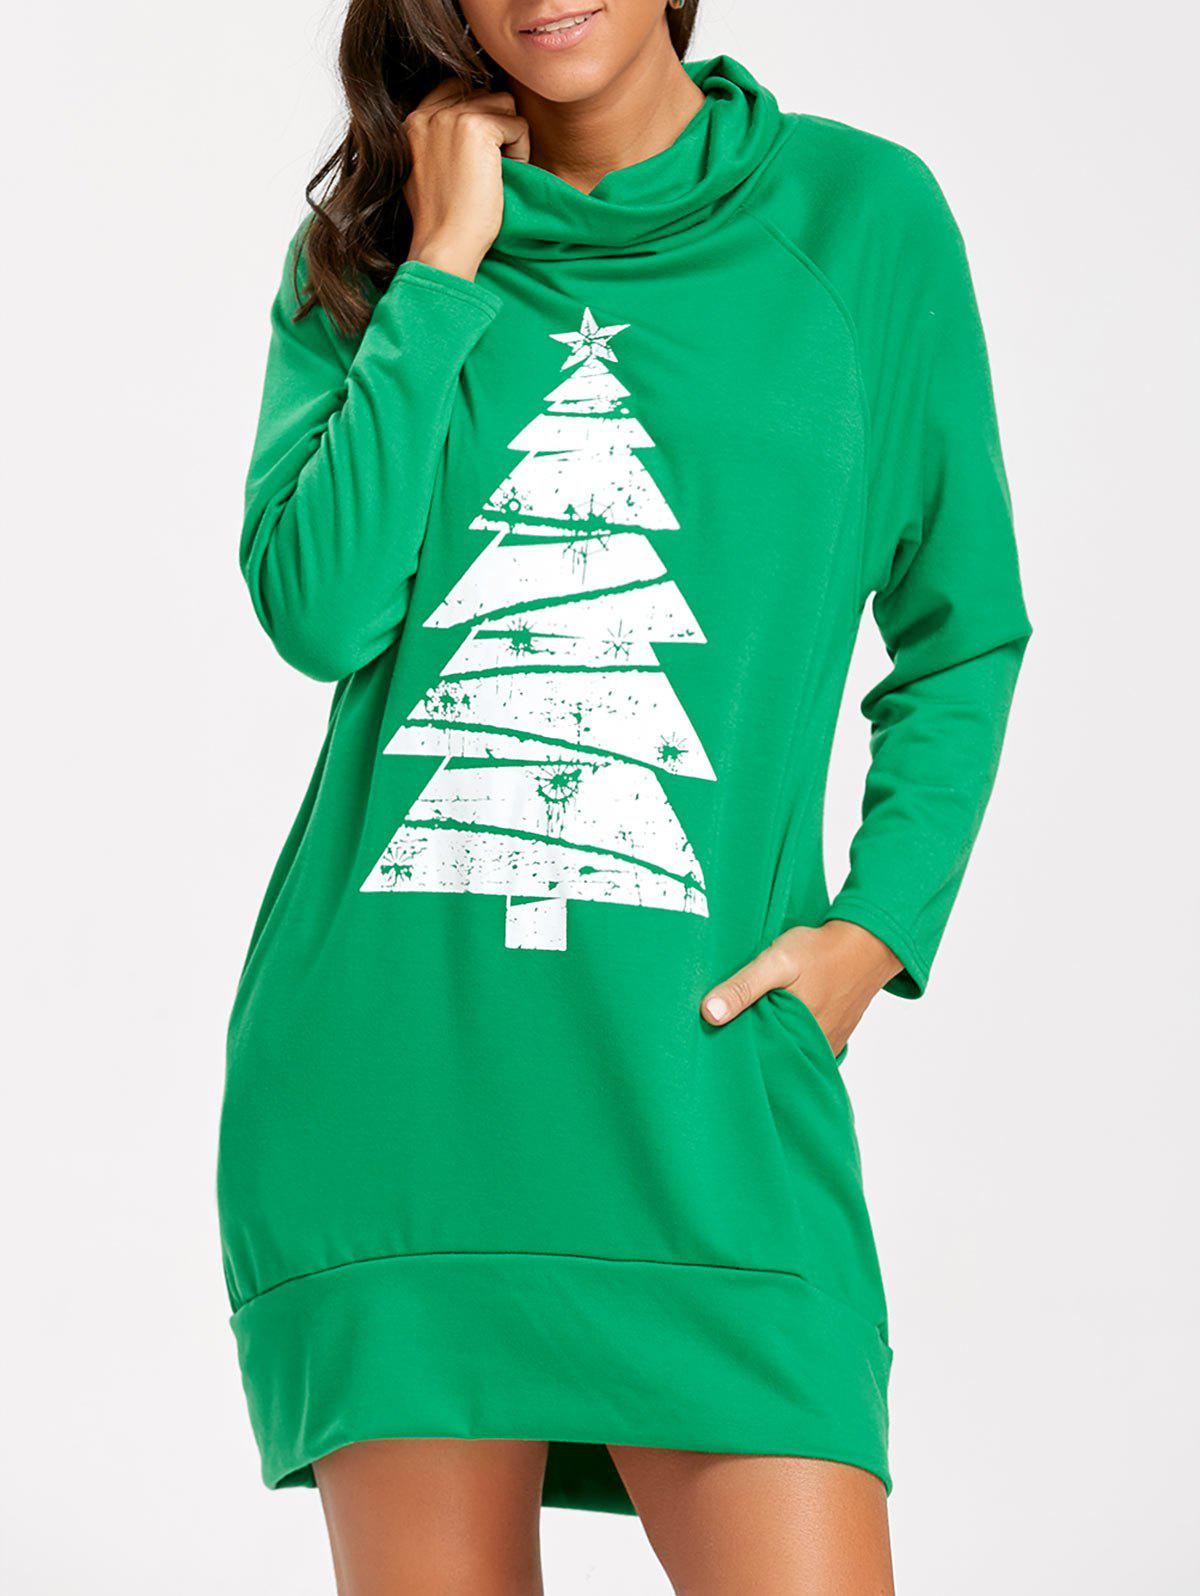 Tree Print Raglan Sleeve Christmas Sweatshirt Dress tree print raglan sleeve christmas sweatshirt dress